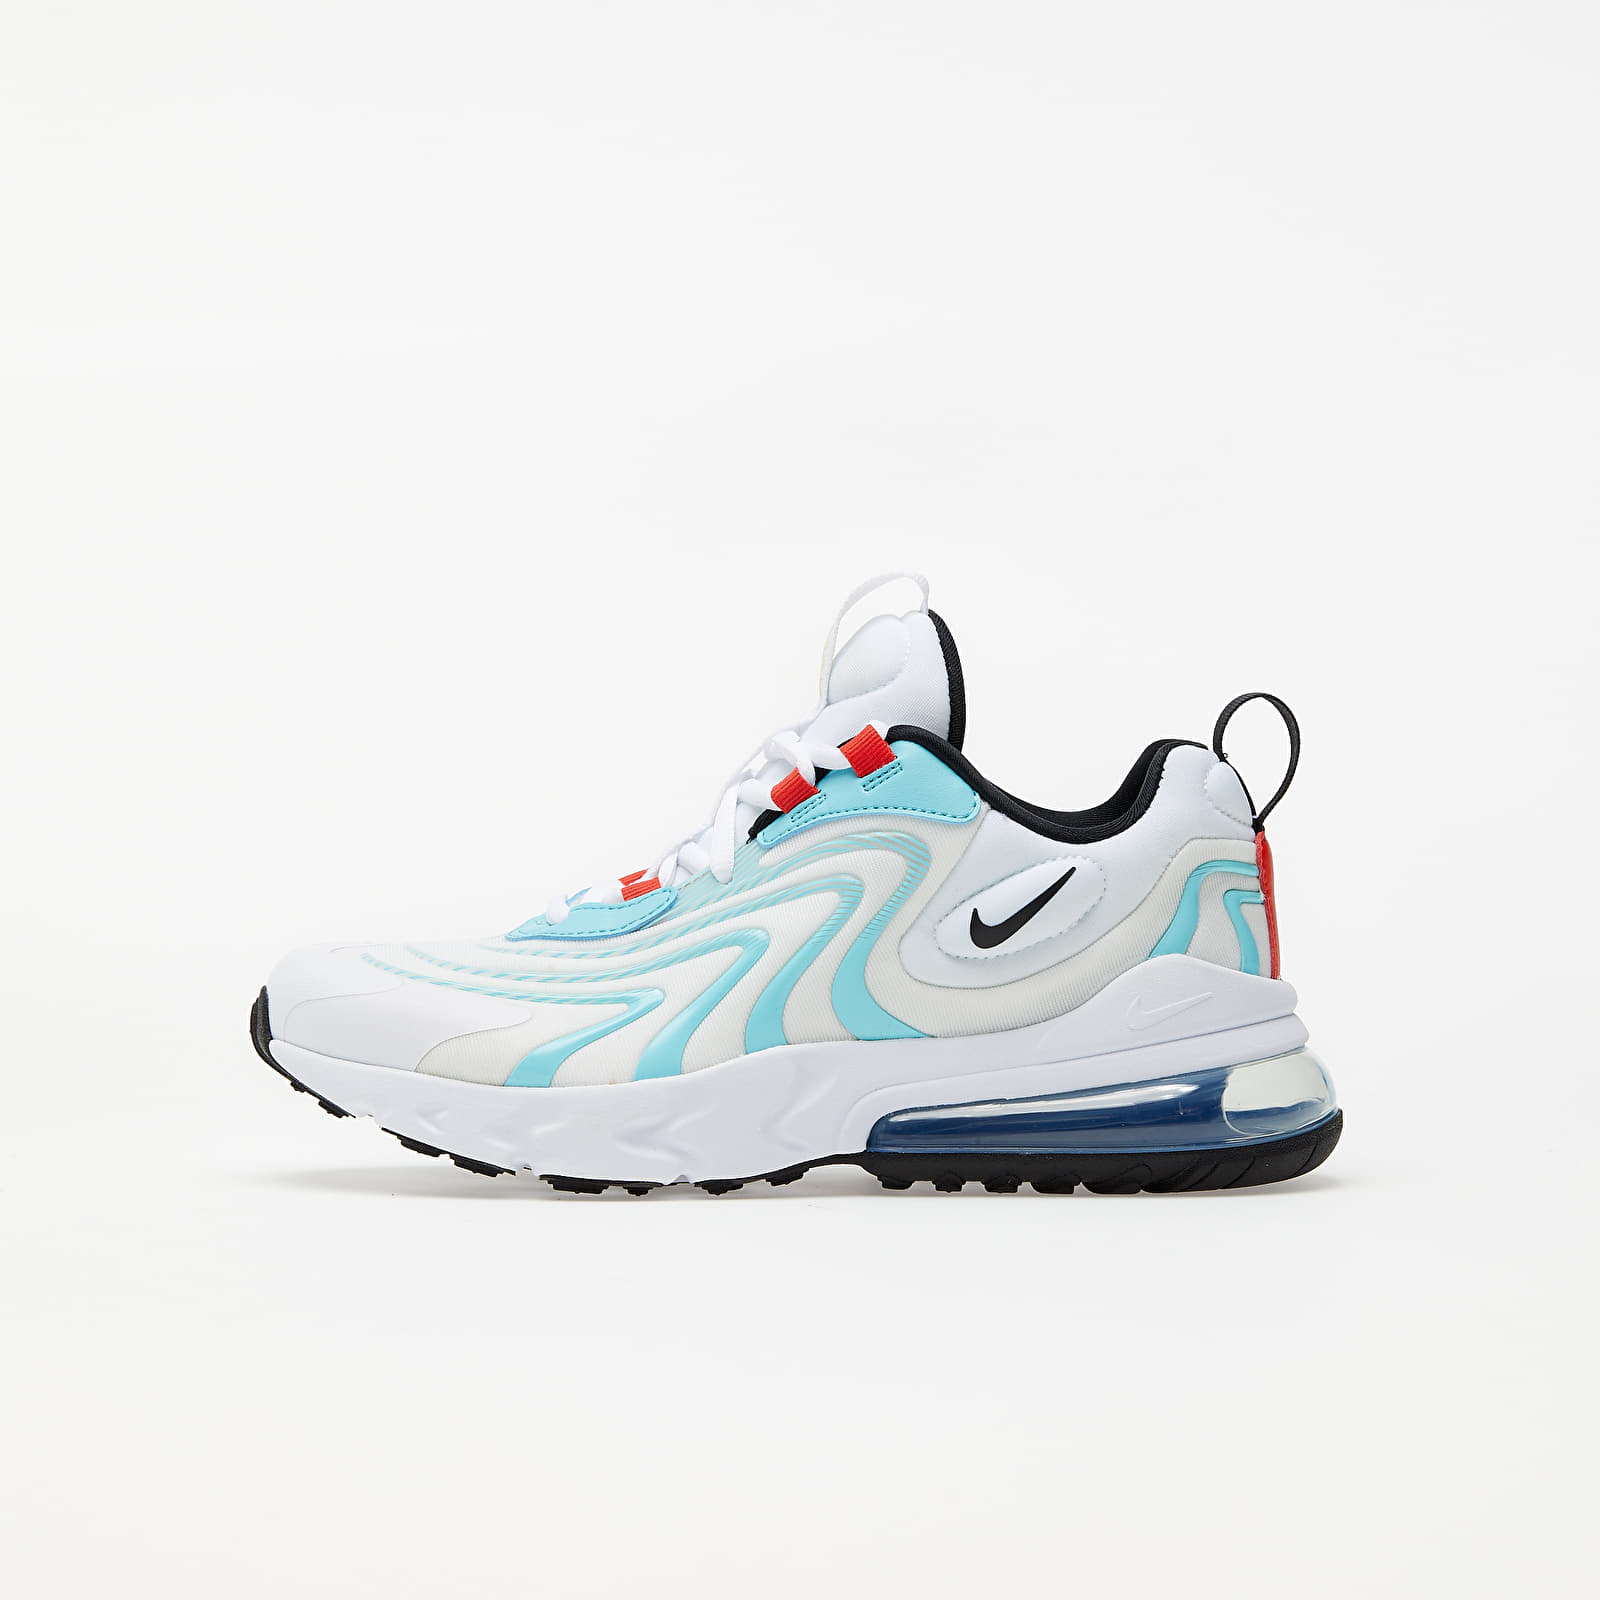 Nike Air Max 270 React Eng (GS) White/ Black-Bleached Aqua-Chile Red EUR 38